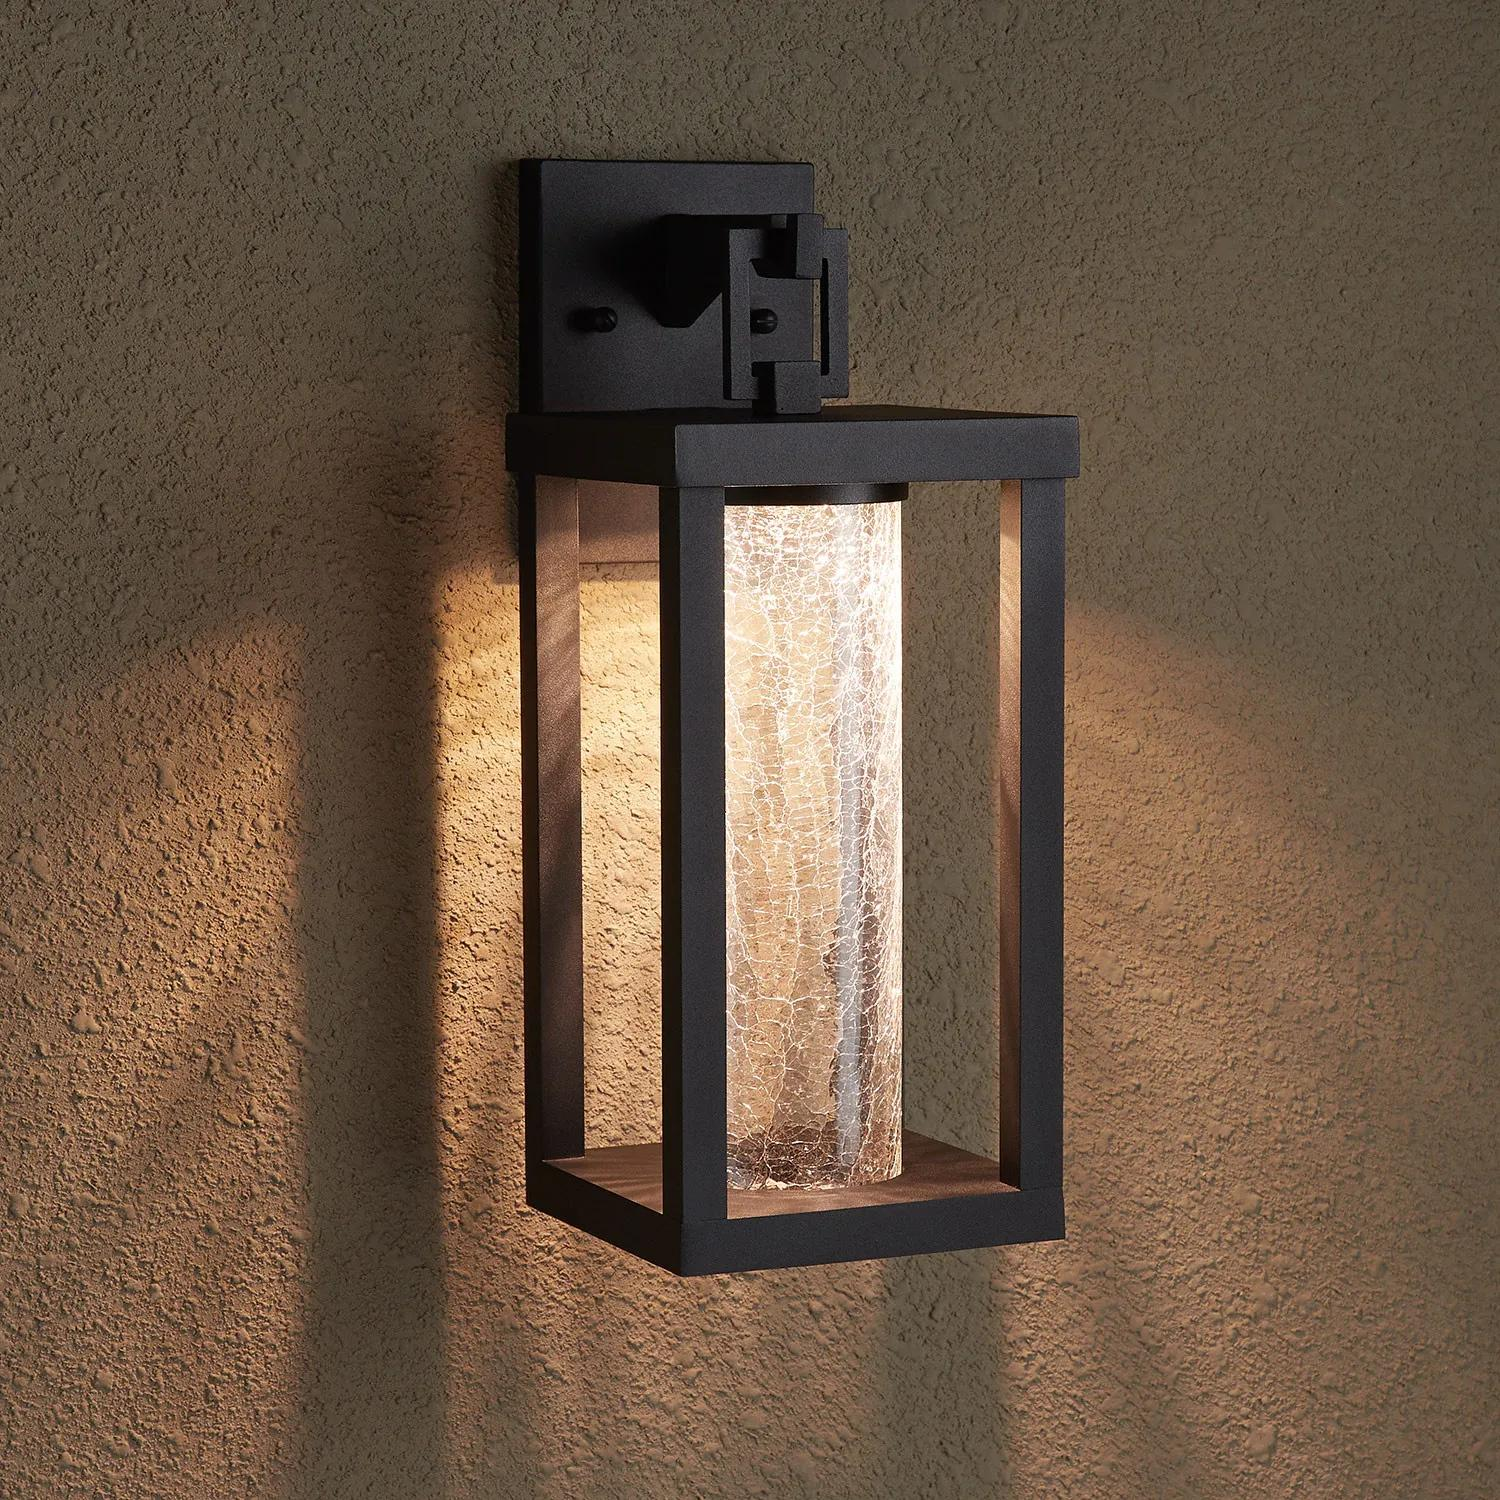 Topping Outdoor Entrance Wall Sconce - Single LED Light - Black - Outdoor Lighting - Lighting